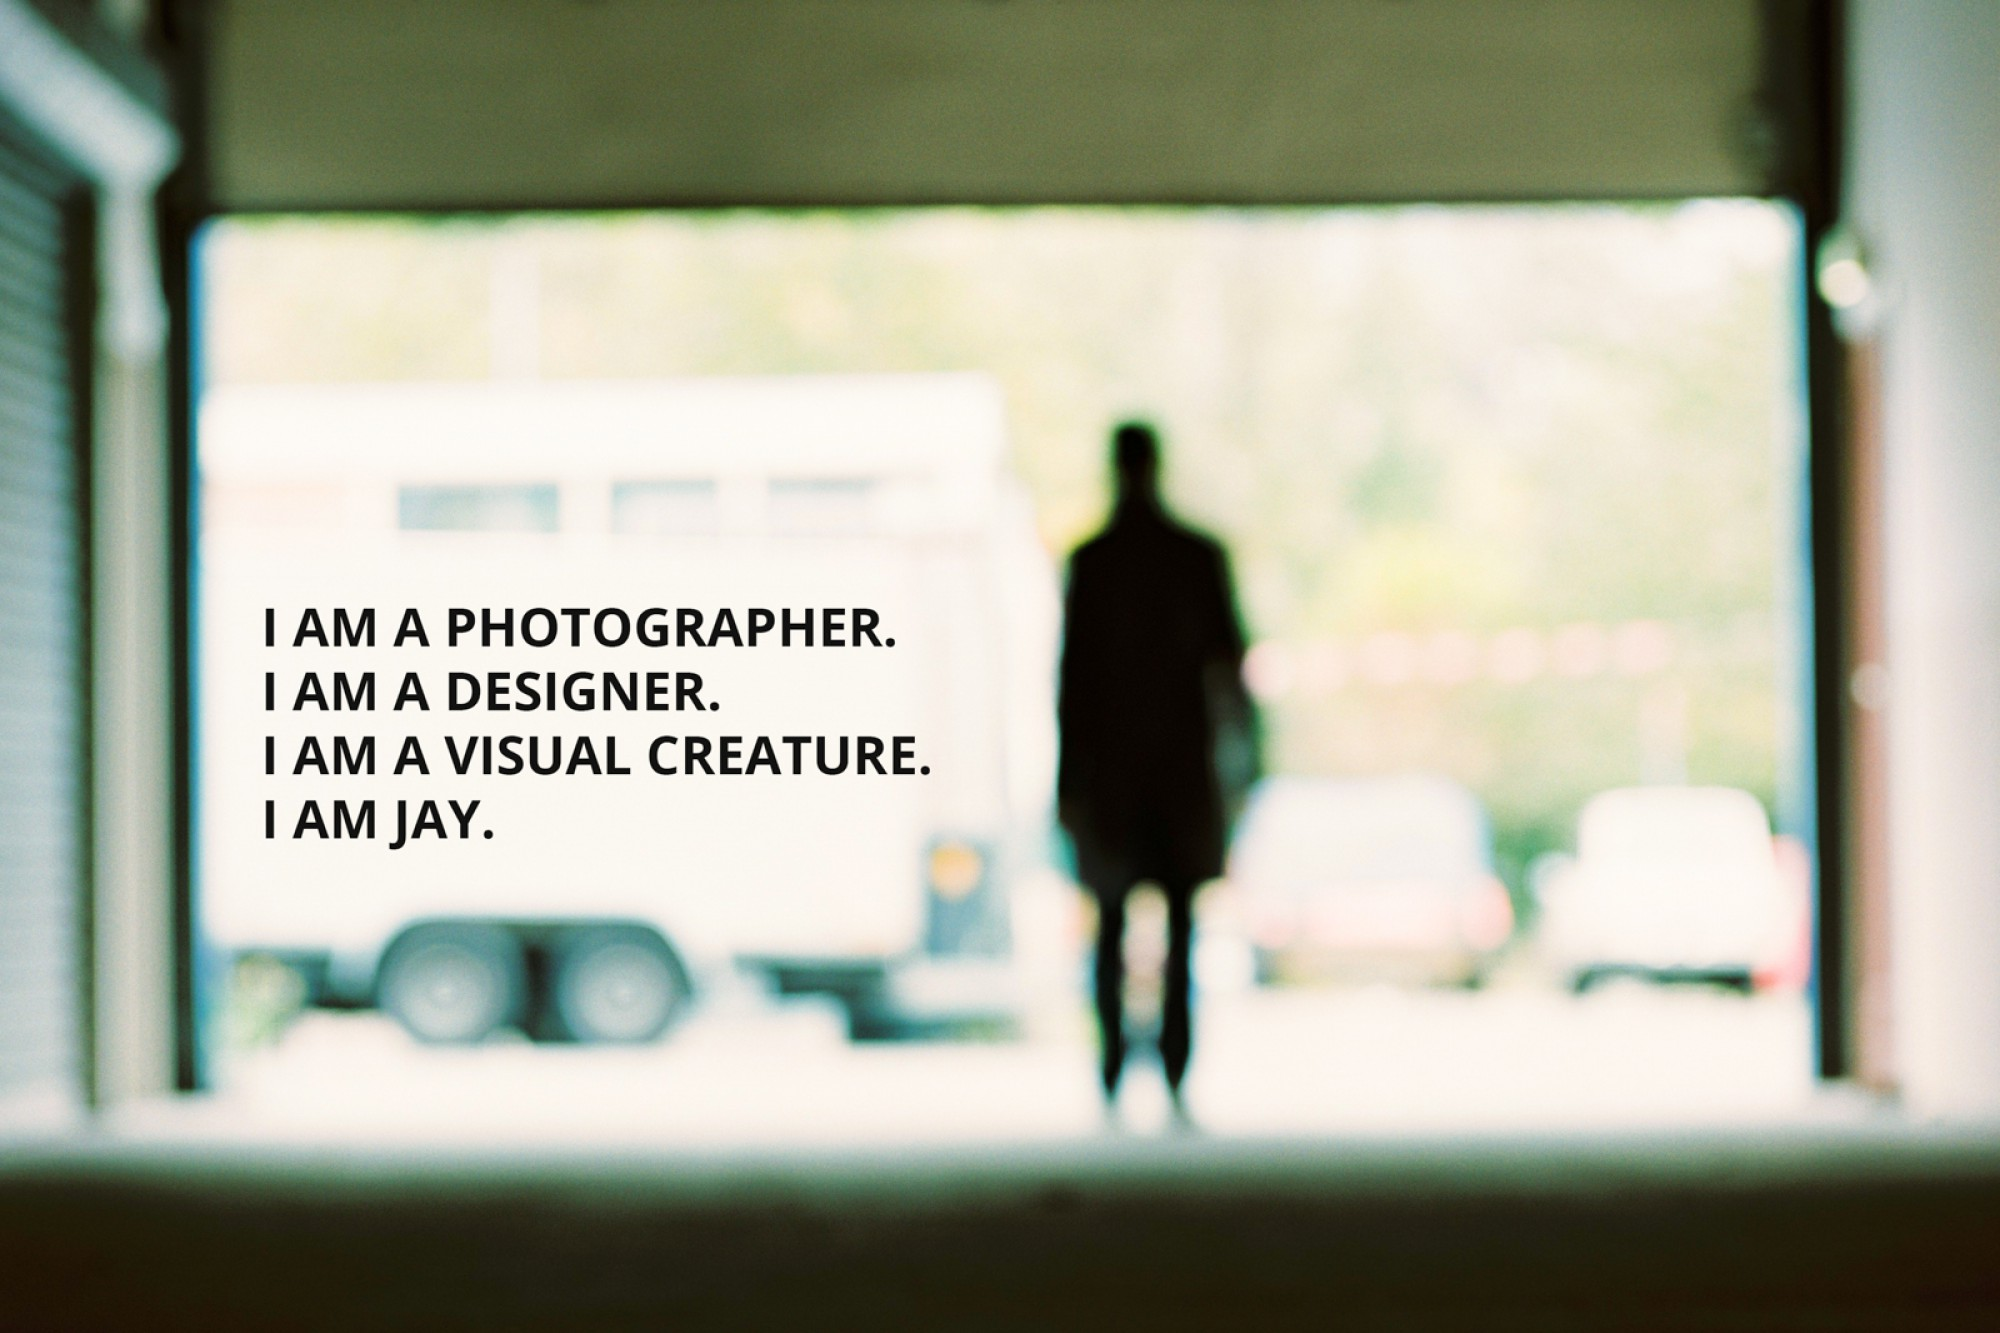 I am a photographer. I am a designer. I am a visual creature. I am Jay.